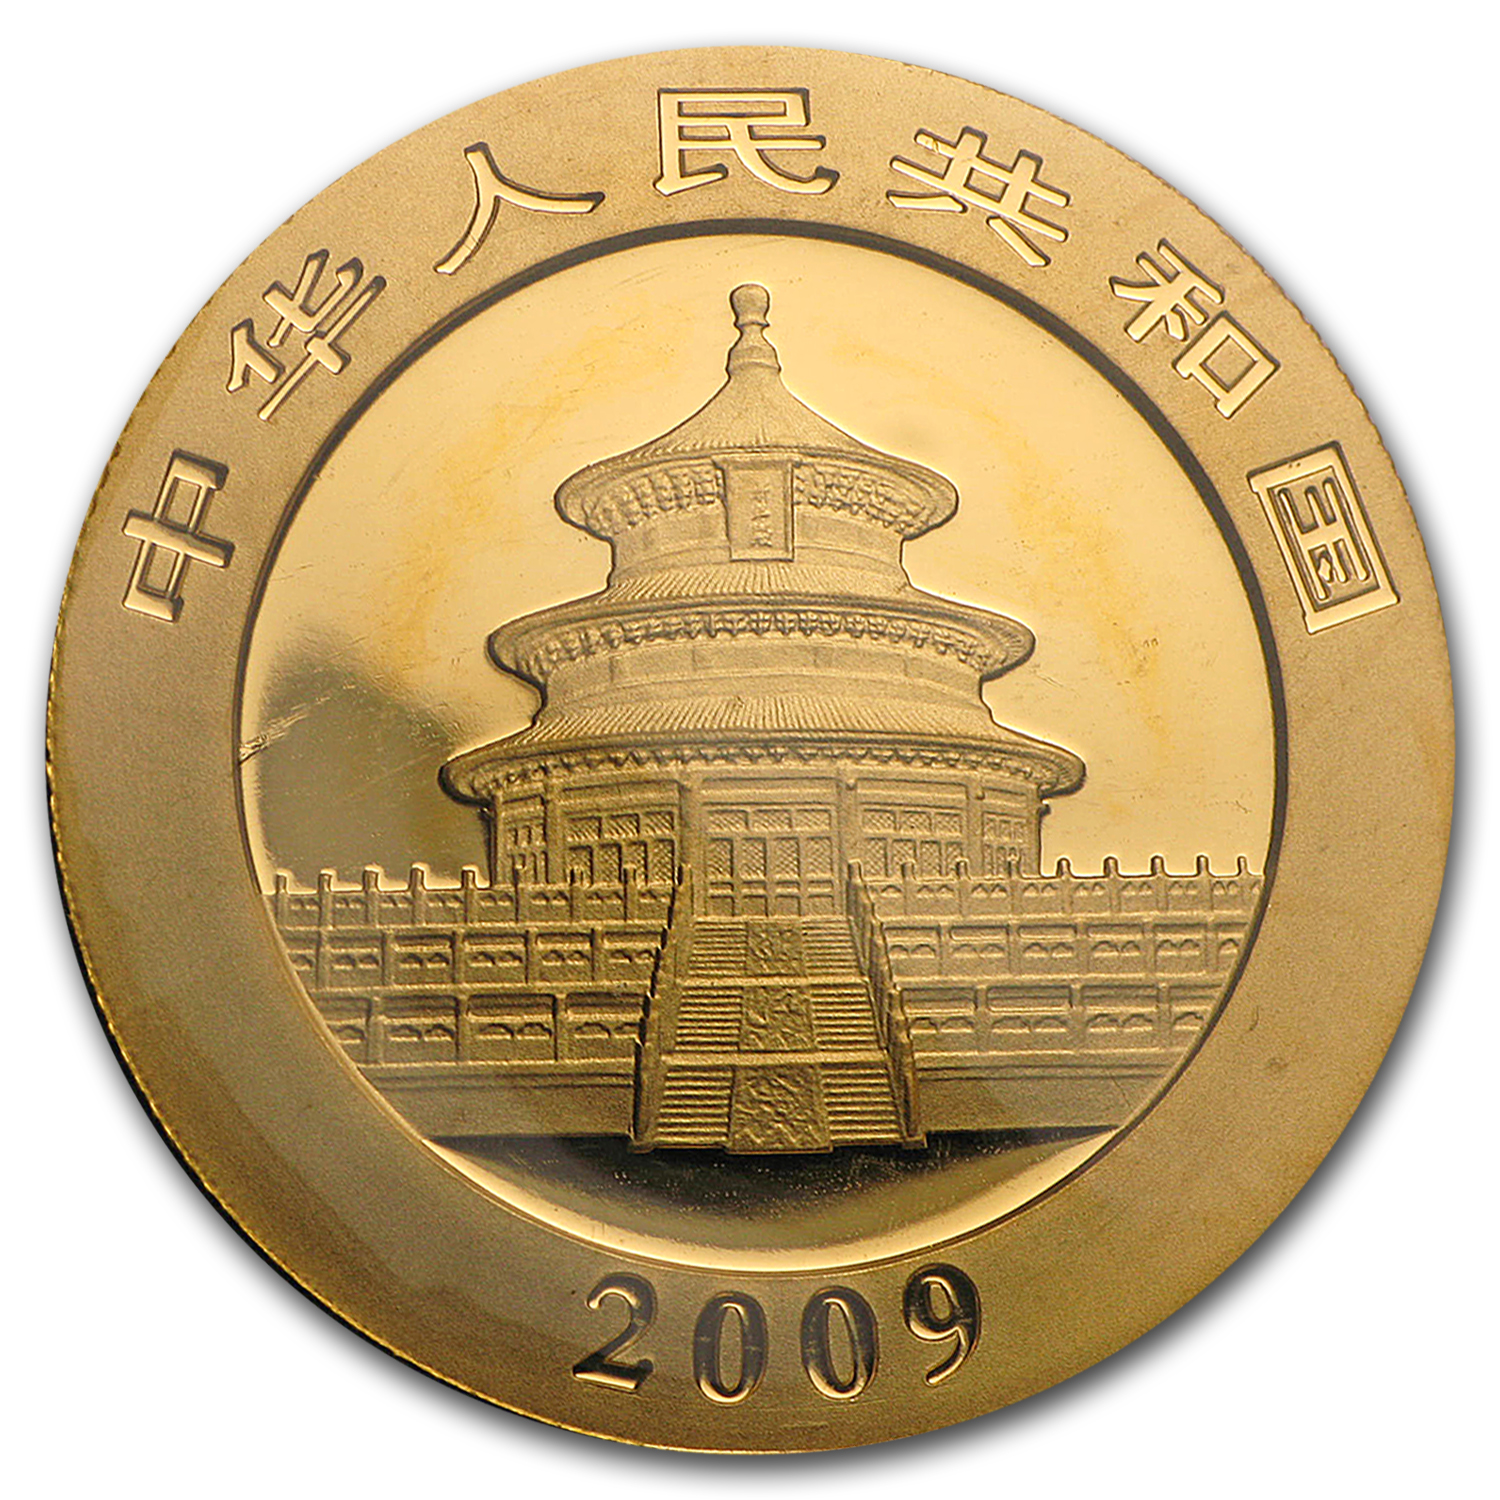 2009 China 1/2 oz Gold Panda BU (Sealed)